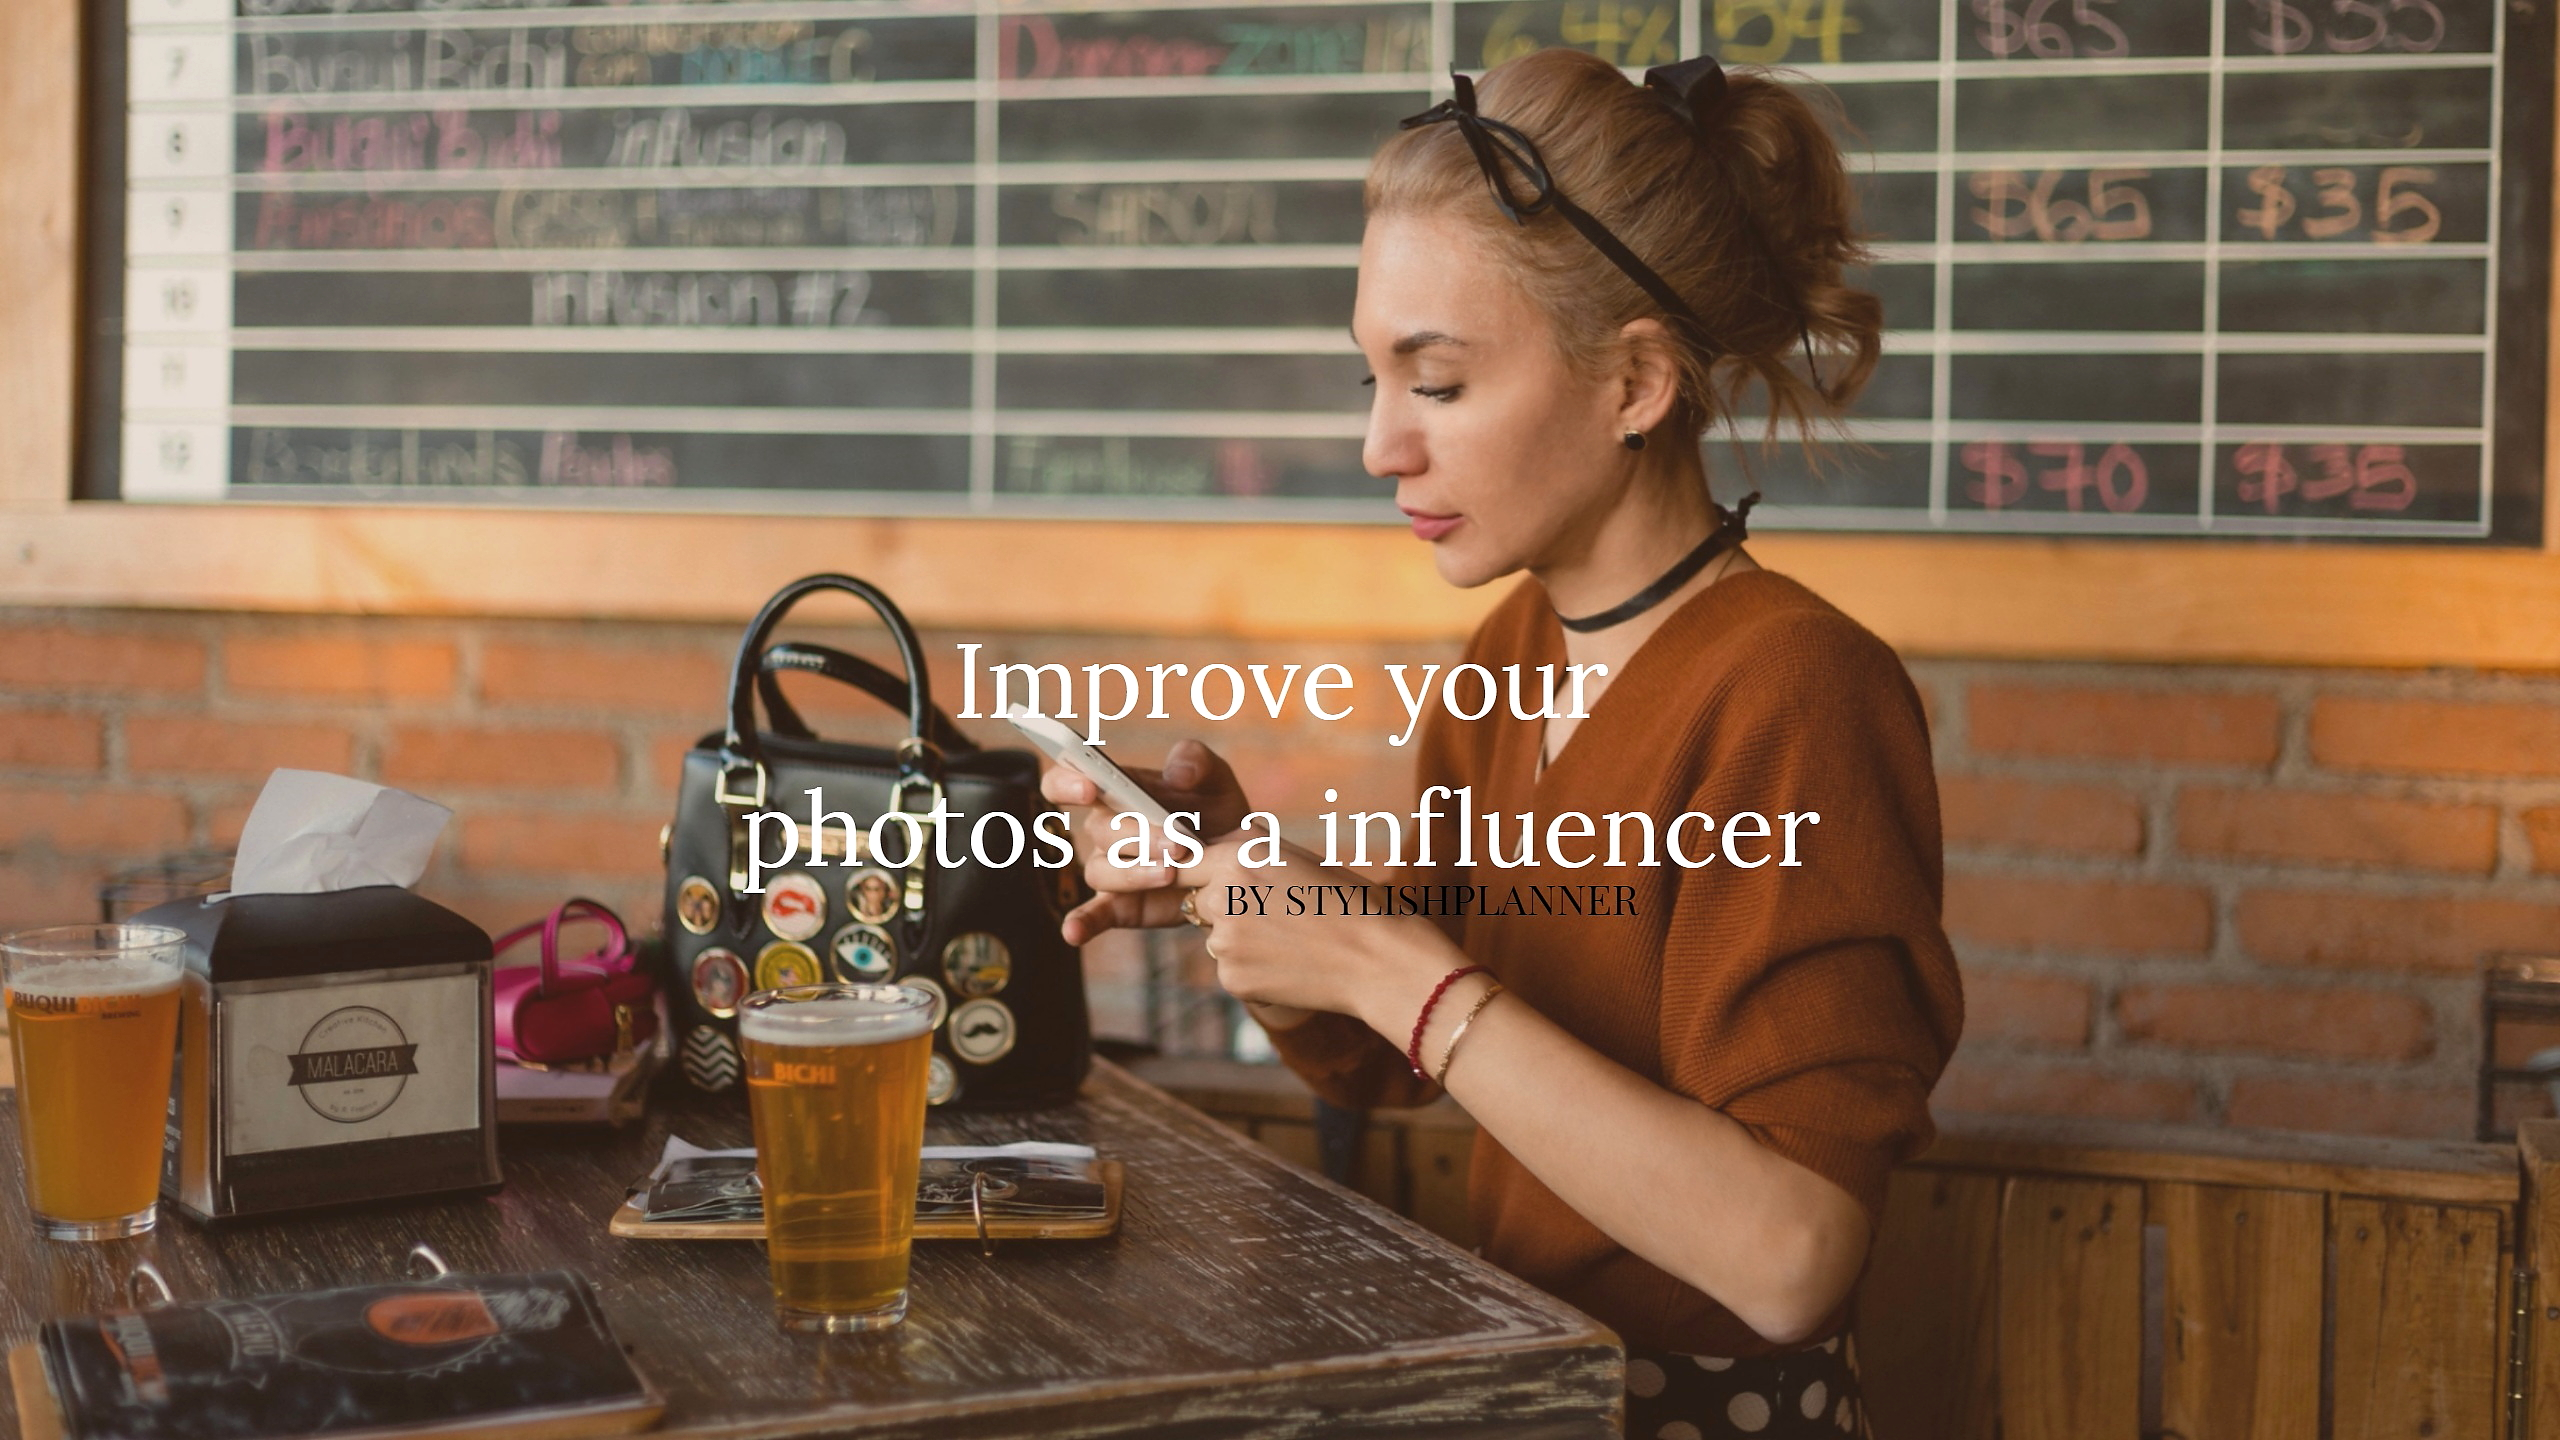 How to improve your photos as a influencer